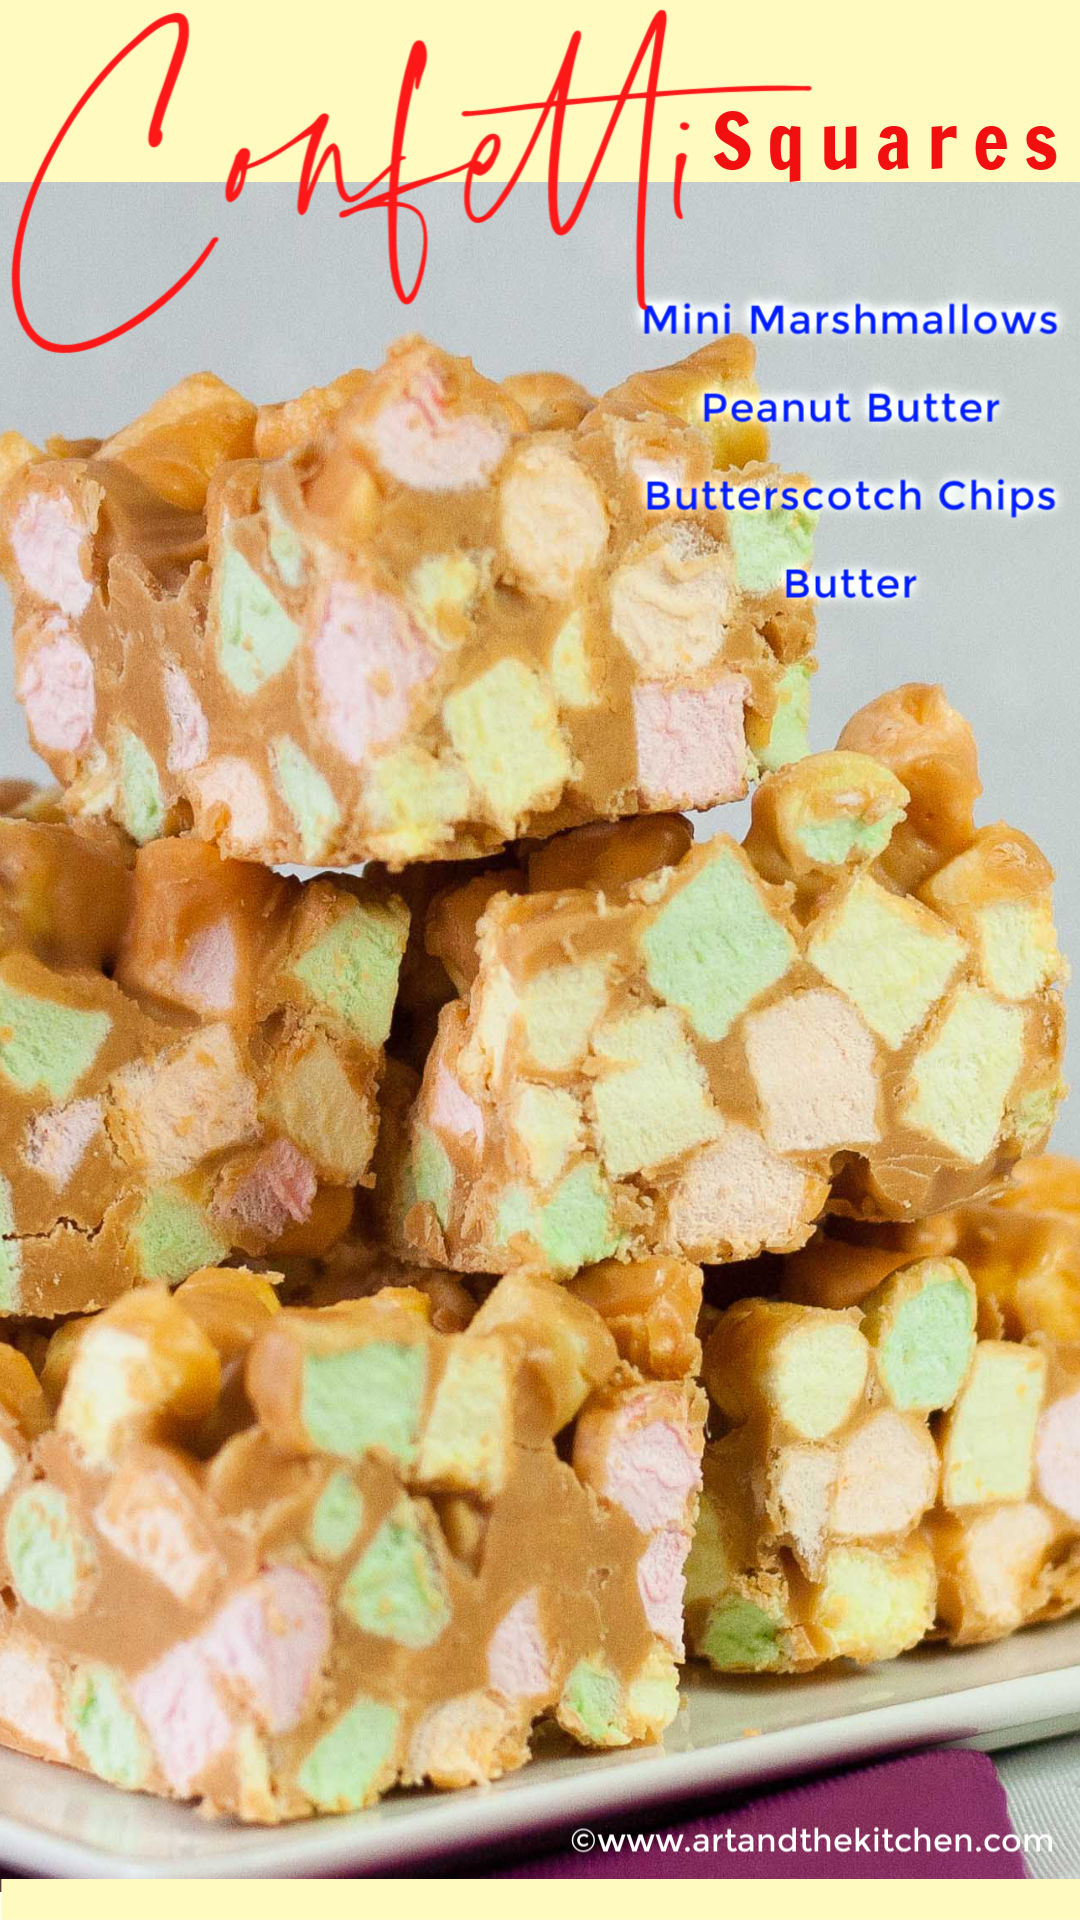 Confetti Squares also known as peanut butter marshmallow squares are addictively delicious. Made with colourful mini marshmallows, peanut butter and butterscotch chips. via @artandthekitch